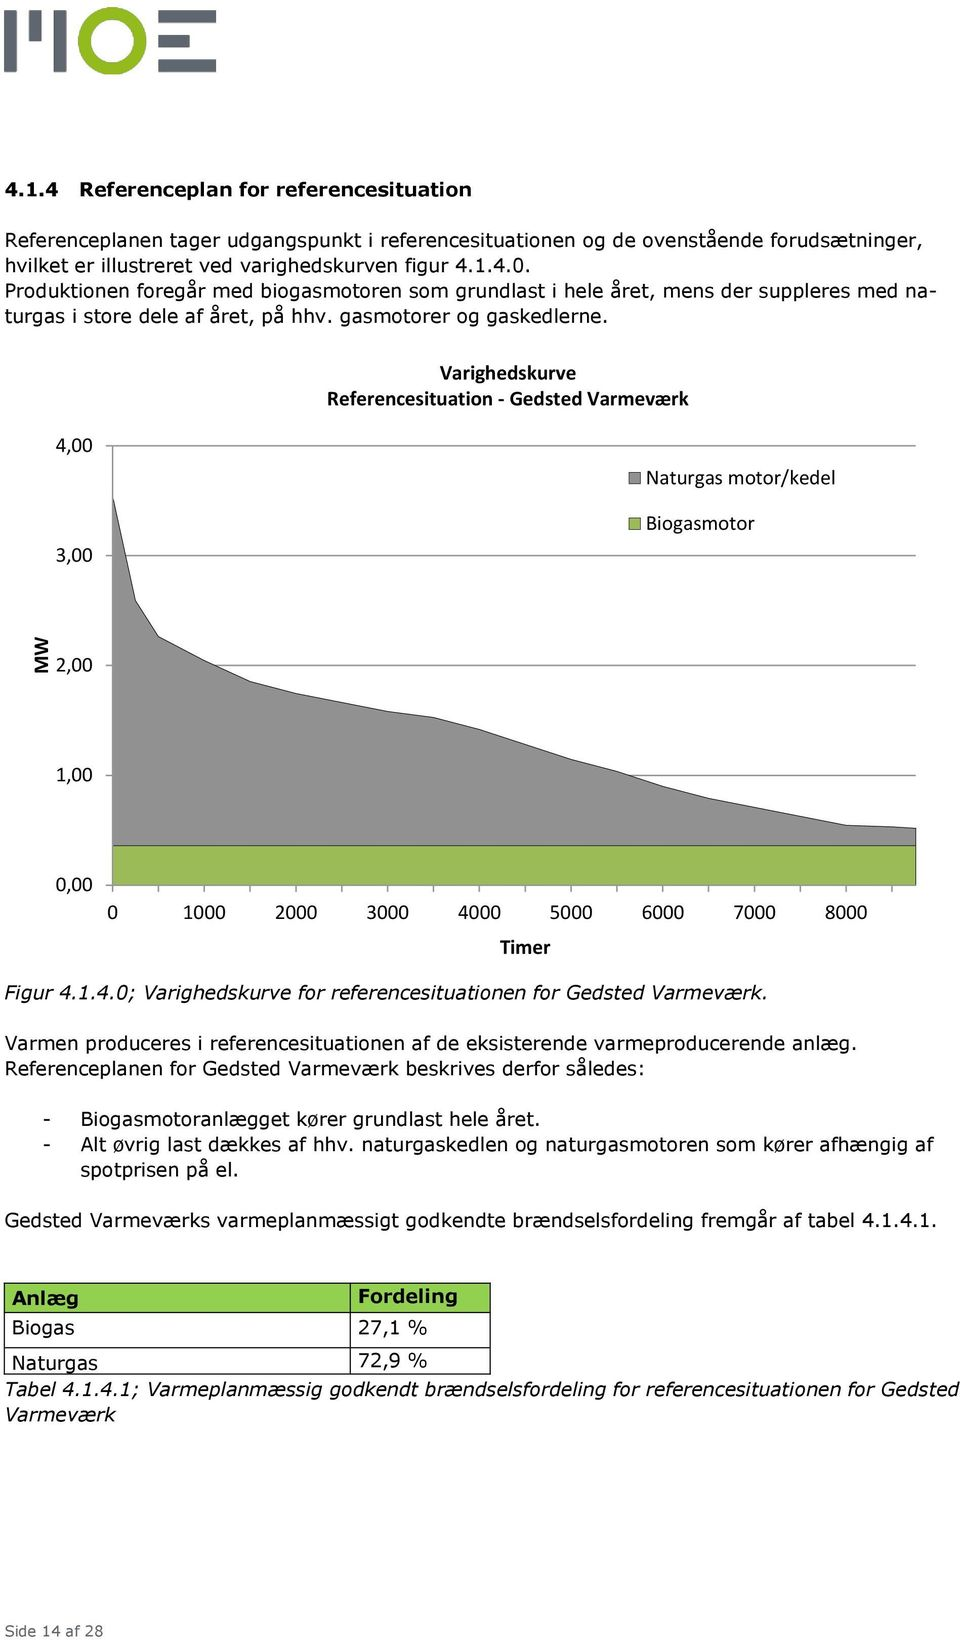 Varighedskurve Referencesituation - Gedsted Varmeværk 4,00 3,00 Naturgas motor/kedel Biogasmotor 2,00 1,00 0,00 0 1000 2000 3000 4000 5000 6000 7000 8000 Timer Figur 4.1.4.0; Varighedskurve for referencesituationen for Gedsted Varmeværk.